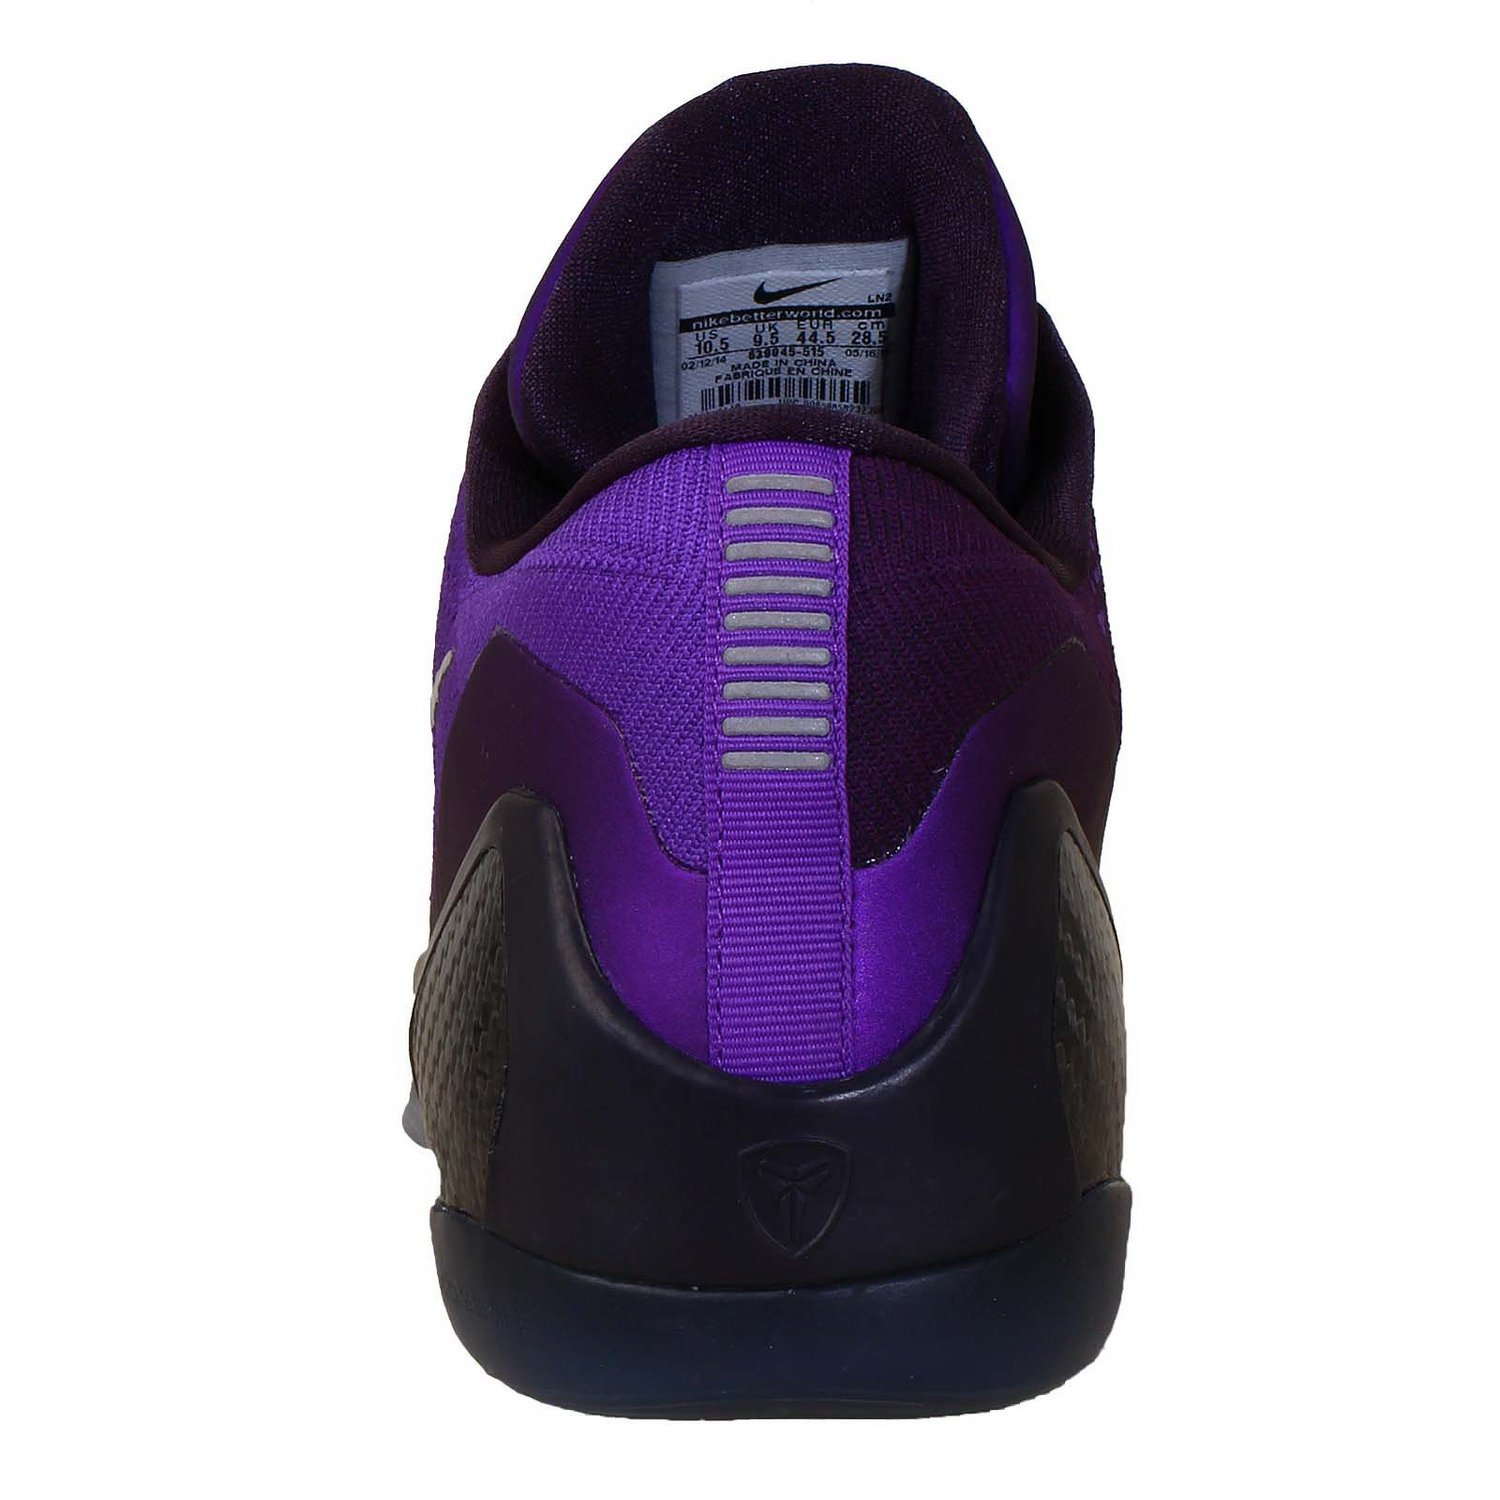 57fe40a932b nike kobe IX elite Low mens basketball trainers 639045 sneakers shoes   Amazon.co.uk  Shoes   Bags